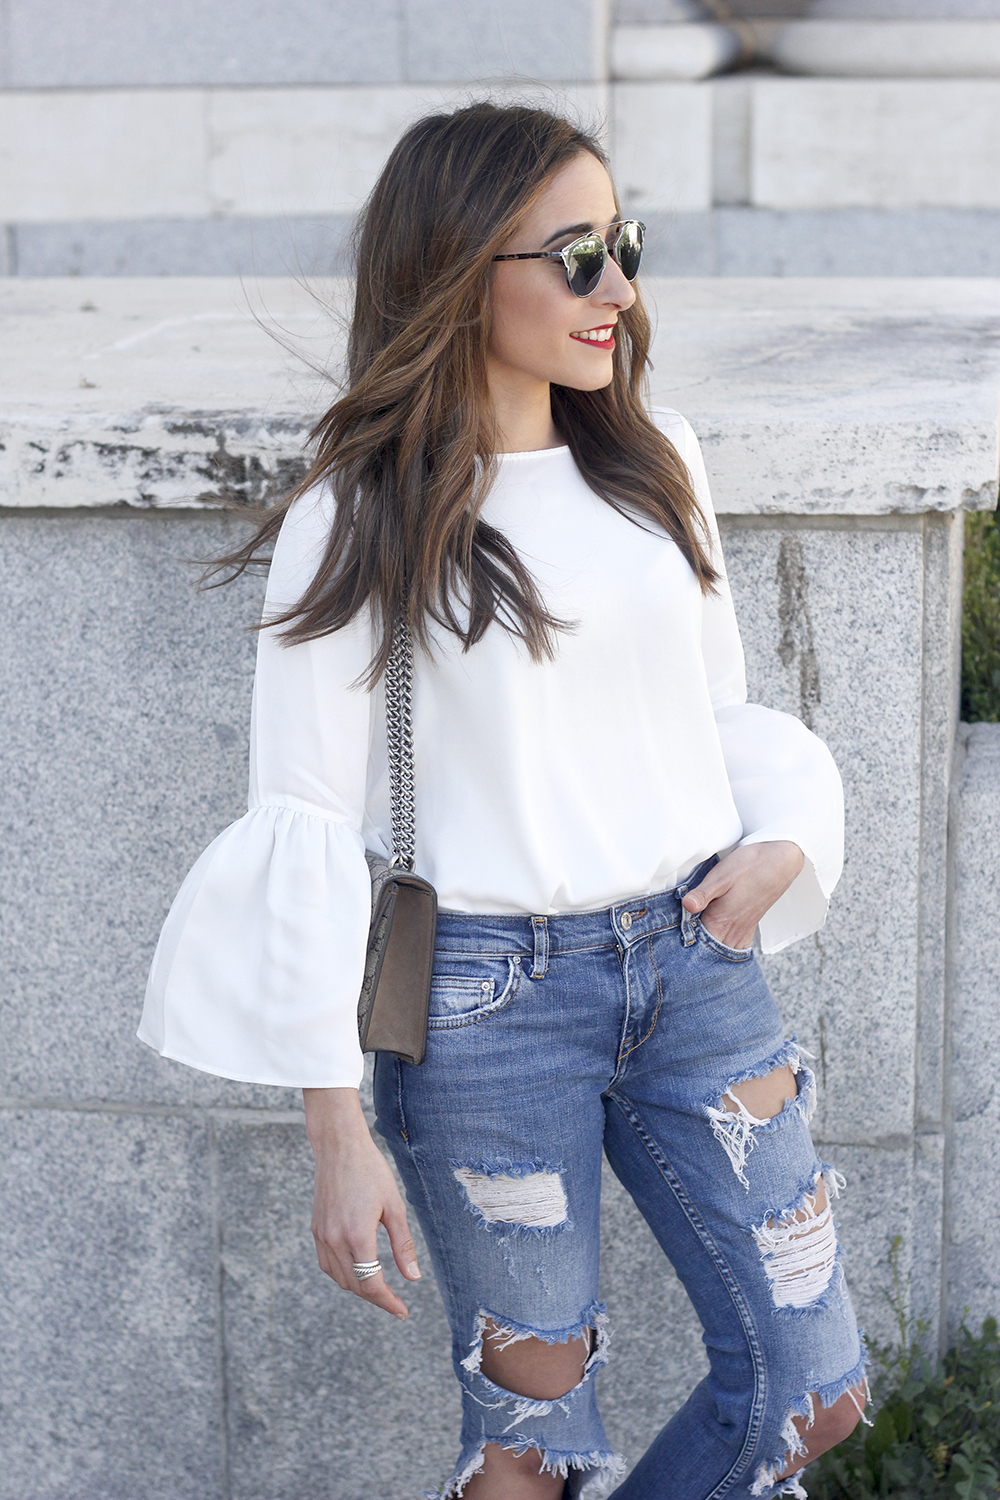 ripped keans gucci bag Jewel ballerinas uterqüe white blouse outfit style fashion03